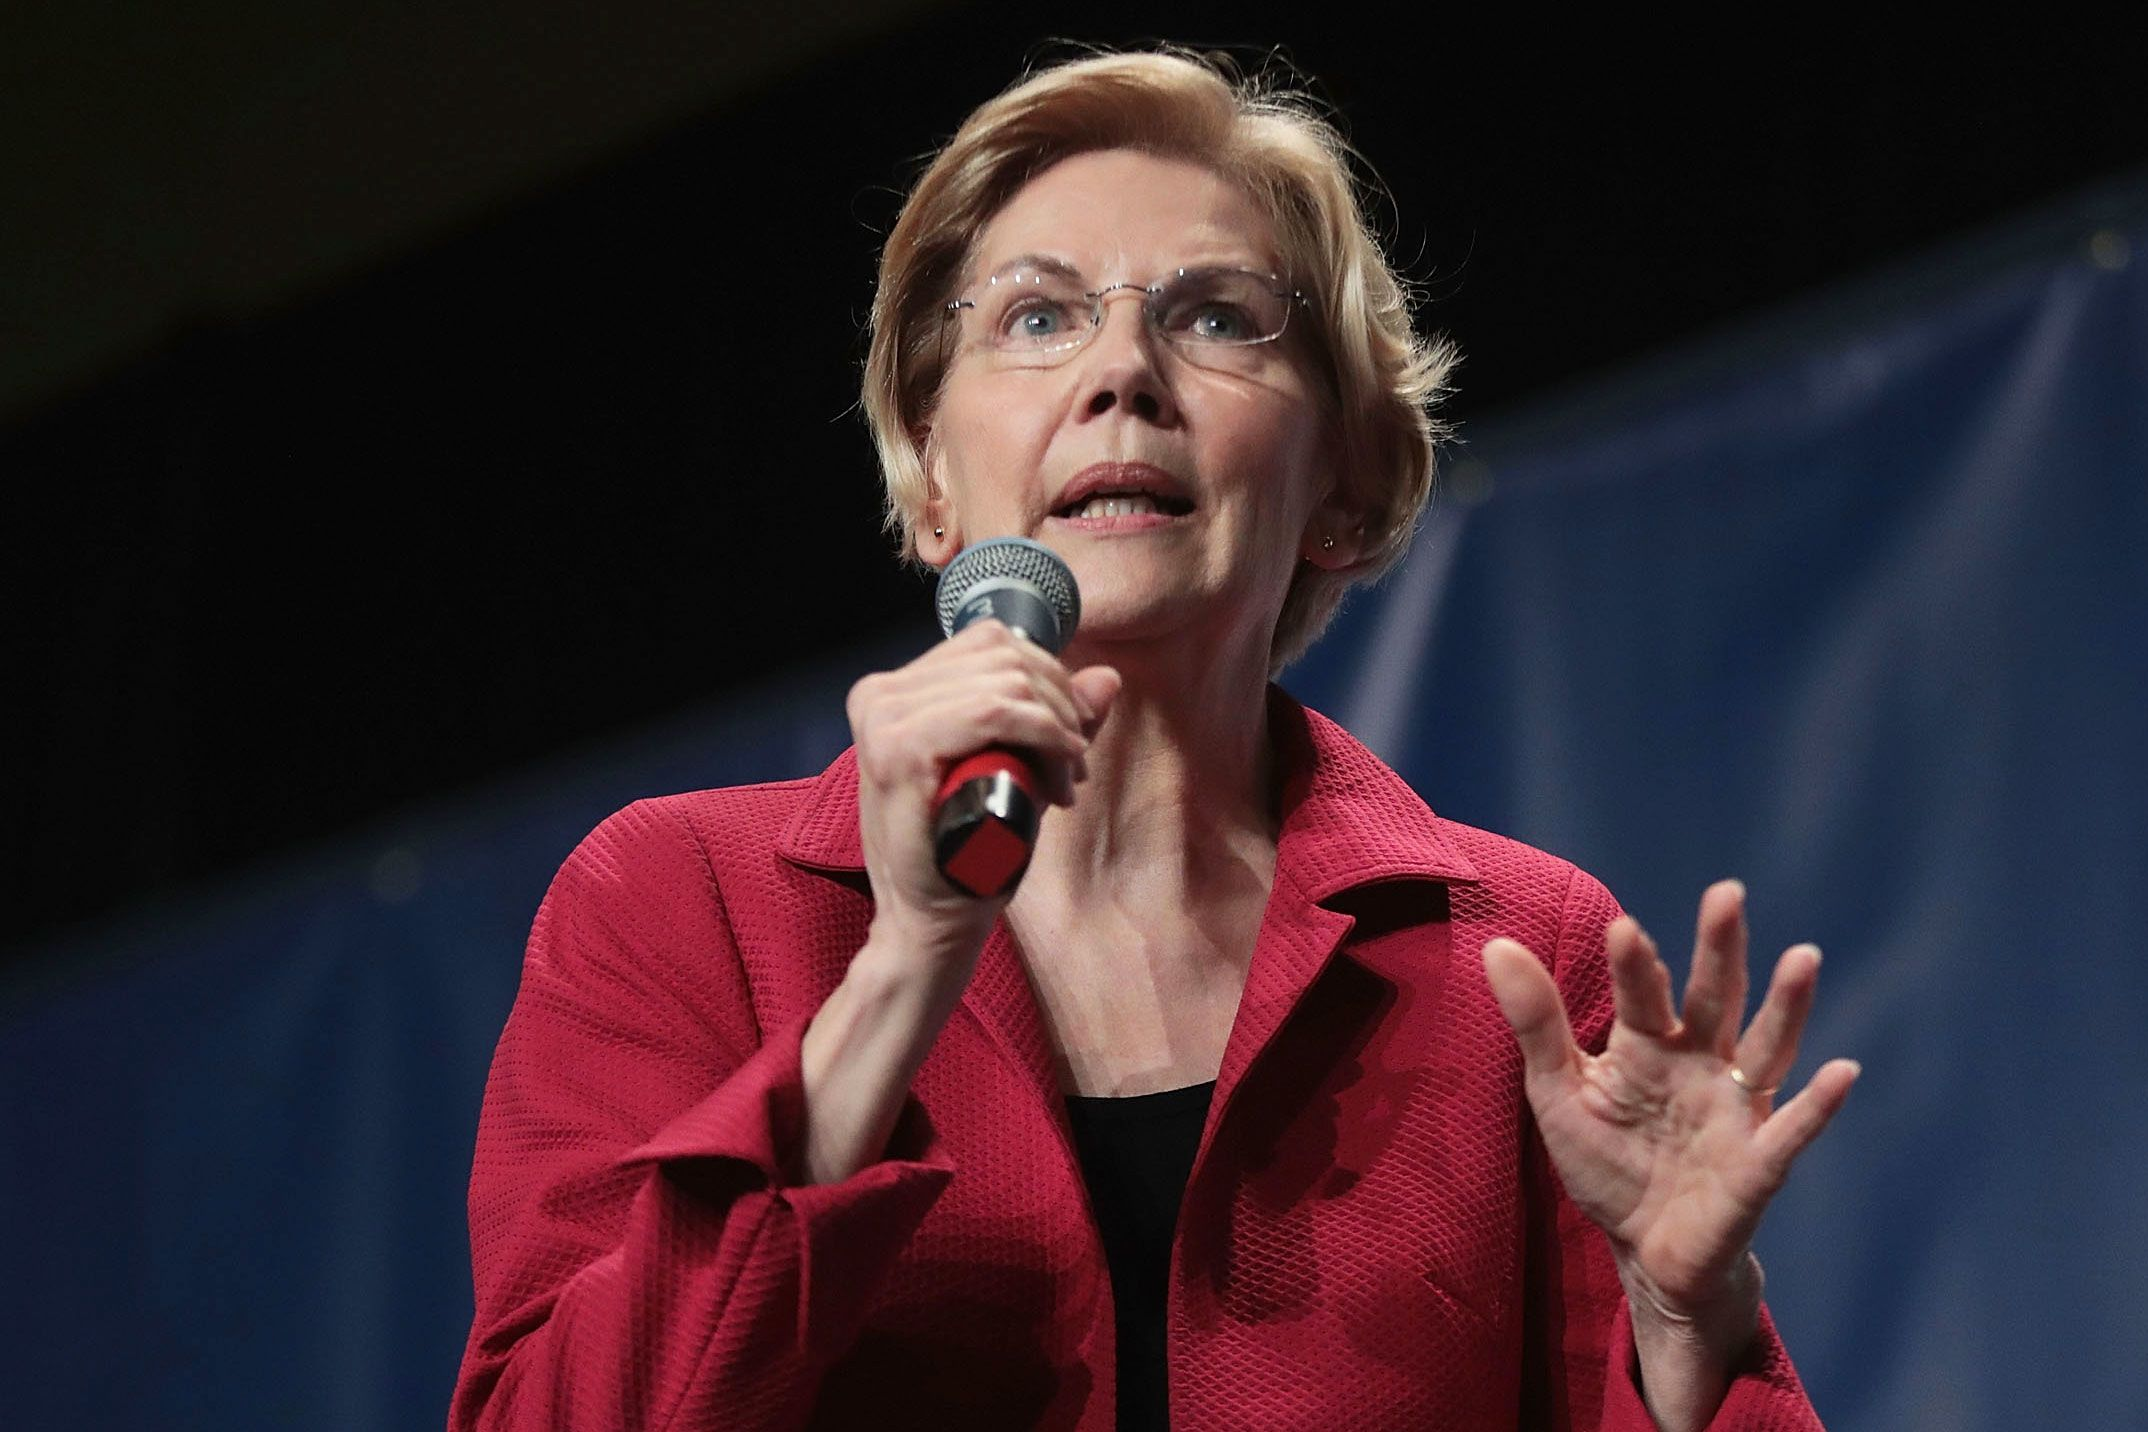 Warren reintroduces legislation requiring firms to disclose climate risk